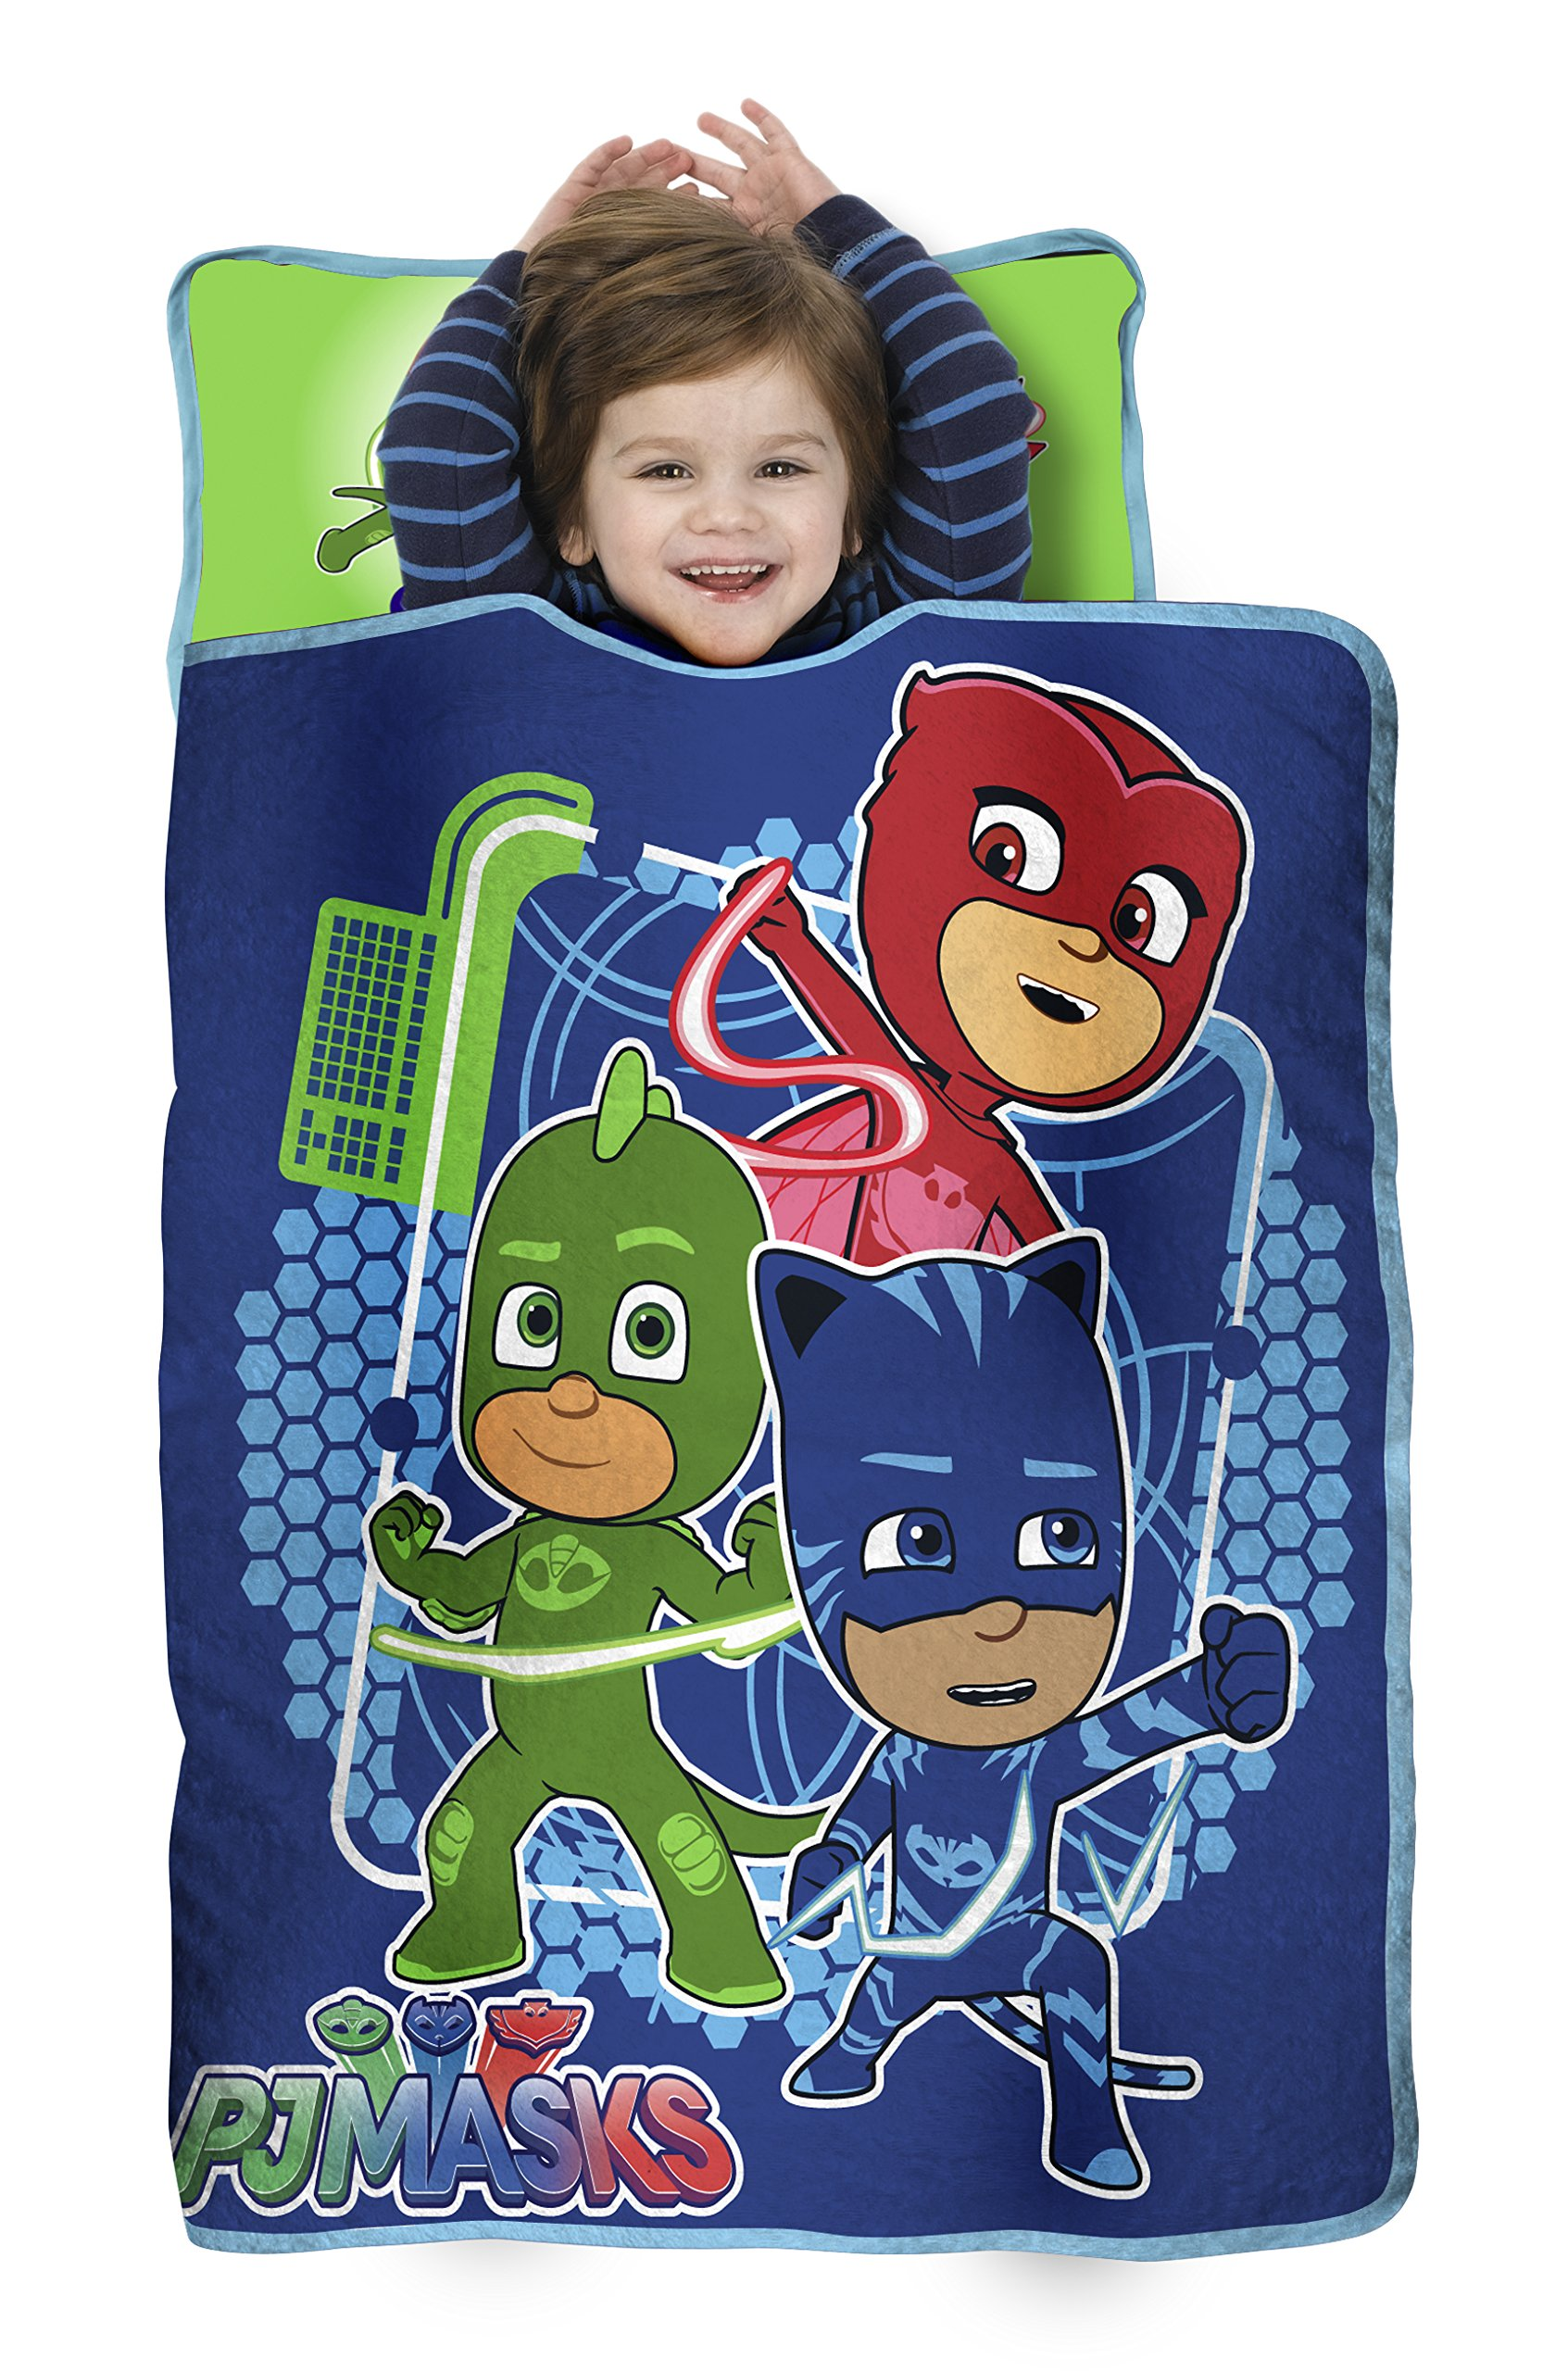 PJ Masks All Shout Horray Toddler Nap Mat - Includes Pillow and Fleece Blanket – Great for Boys and Girls Napping at Daycare, Preschool, Or Kindergarten - Fits Sleeping Toddlers and Young Children